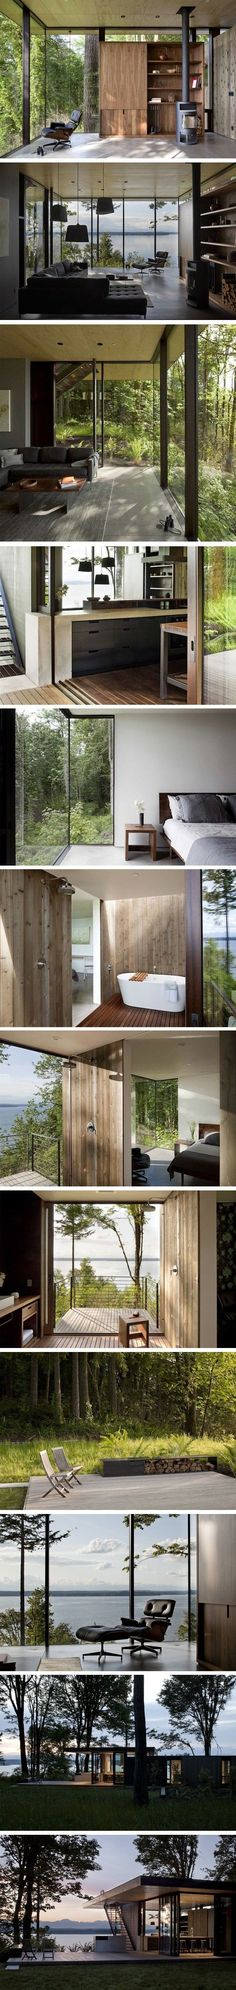 Case Inlet Retreat by MW/Works Architecture